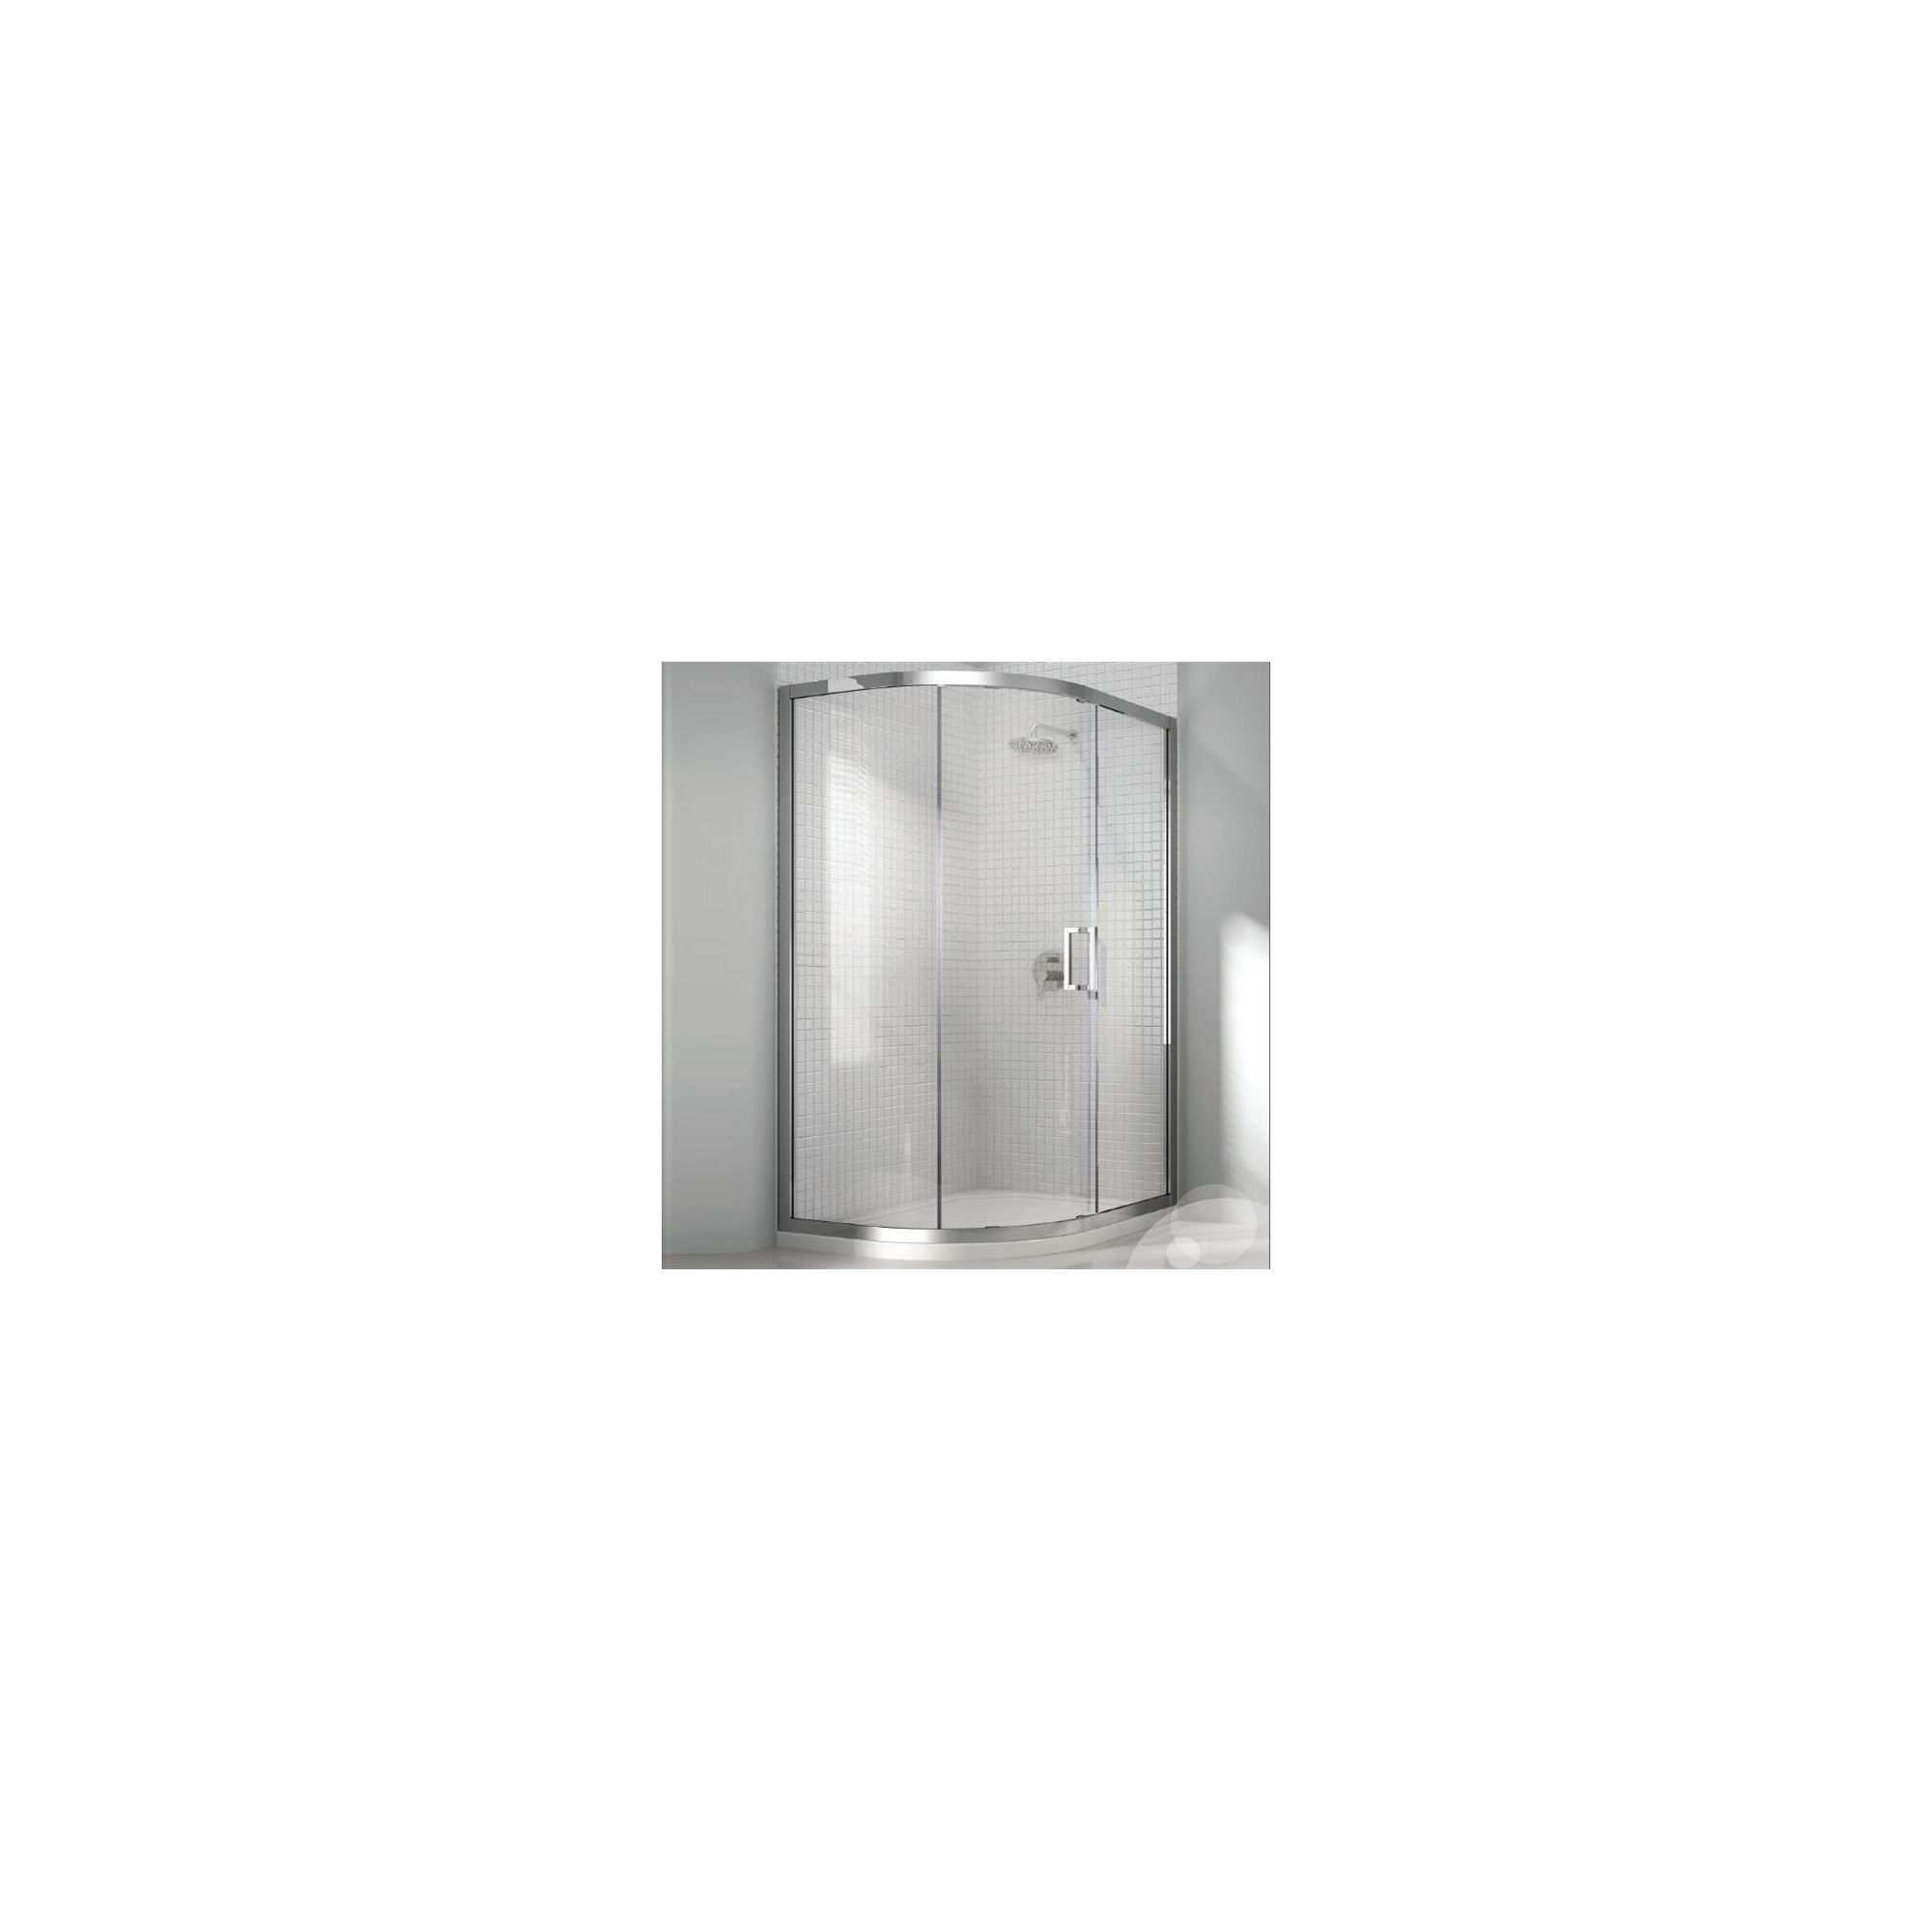 Merlyn Vivid Eight Offset Quadrant Shower Enclosure, 900mm x 760mm, Left Handed, Low Profile Tray, 8mm Glass at Tesco Direct